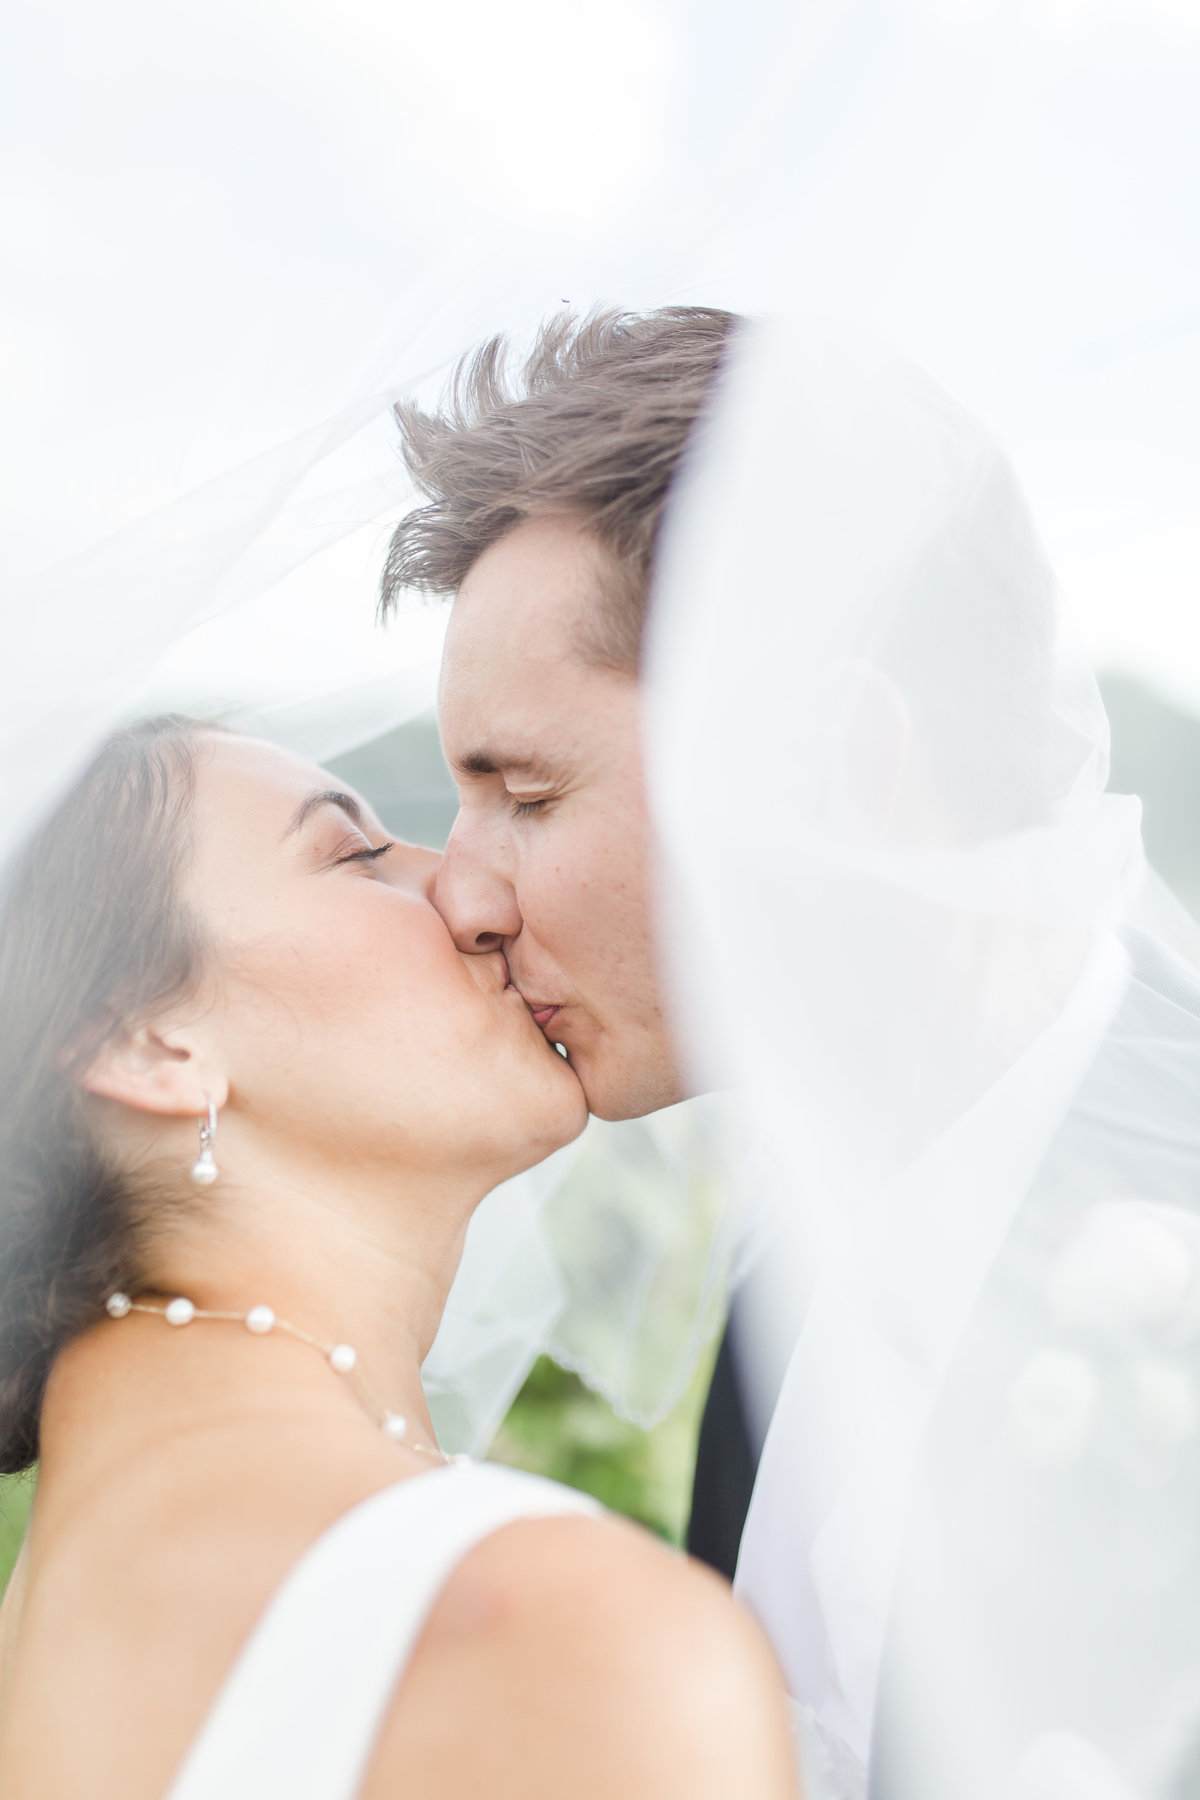 HYP_Kristina_and_Benedikt_Wedding_0068